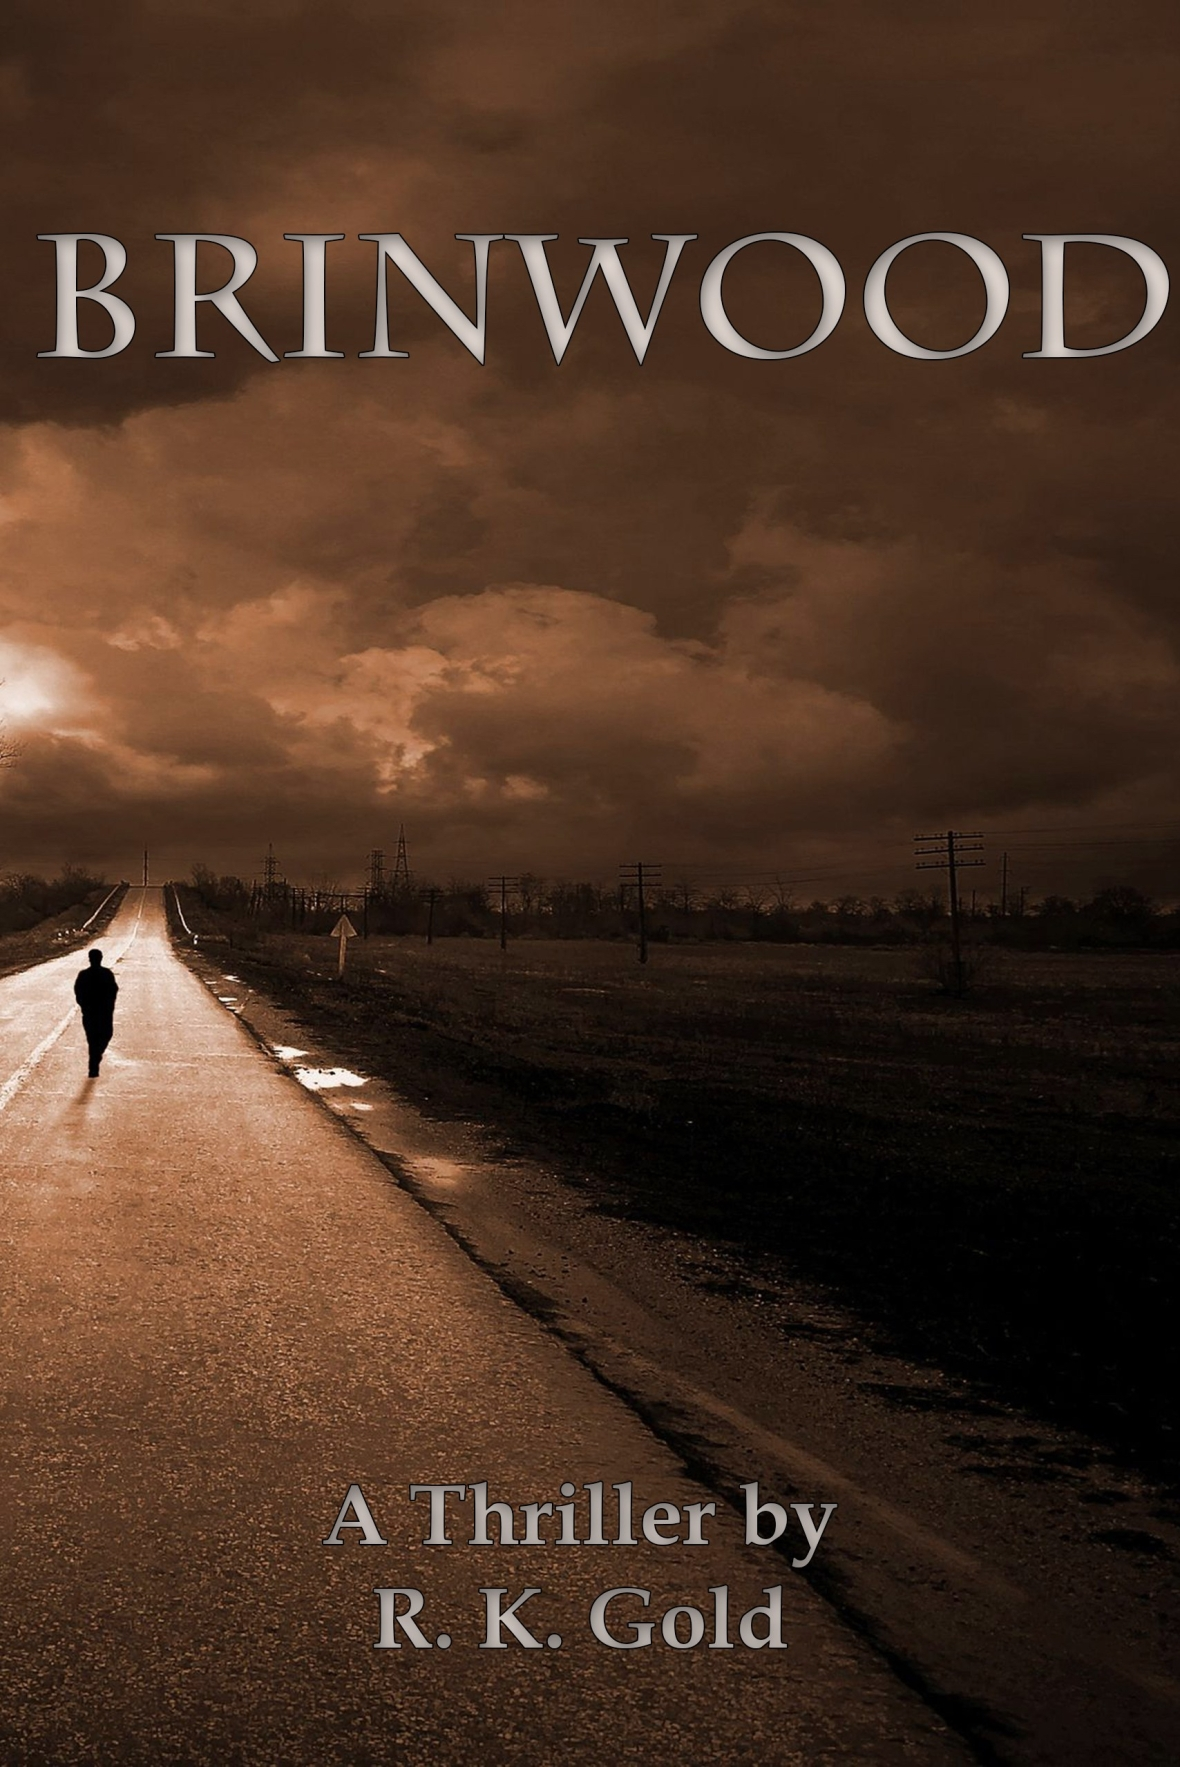 Cult Classic writing writer author book amazon brinwood violence fighting death afterlife thought metaphysical